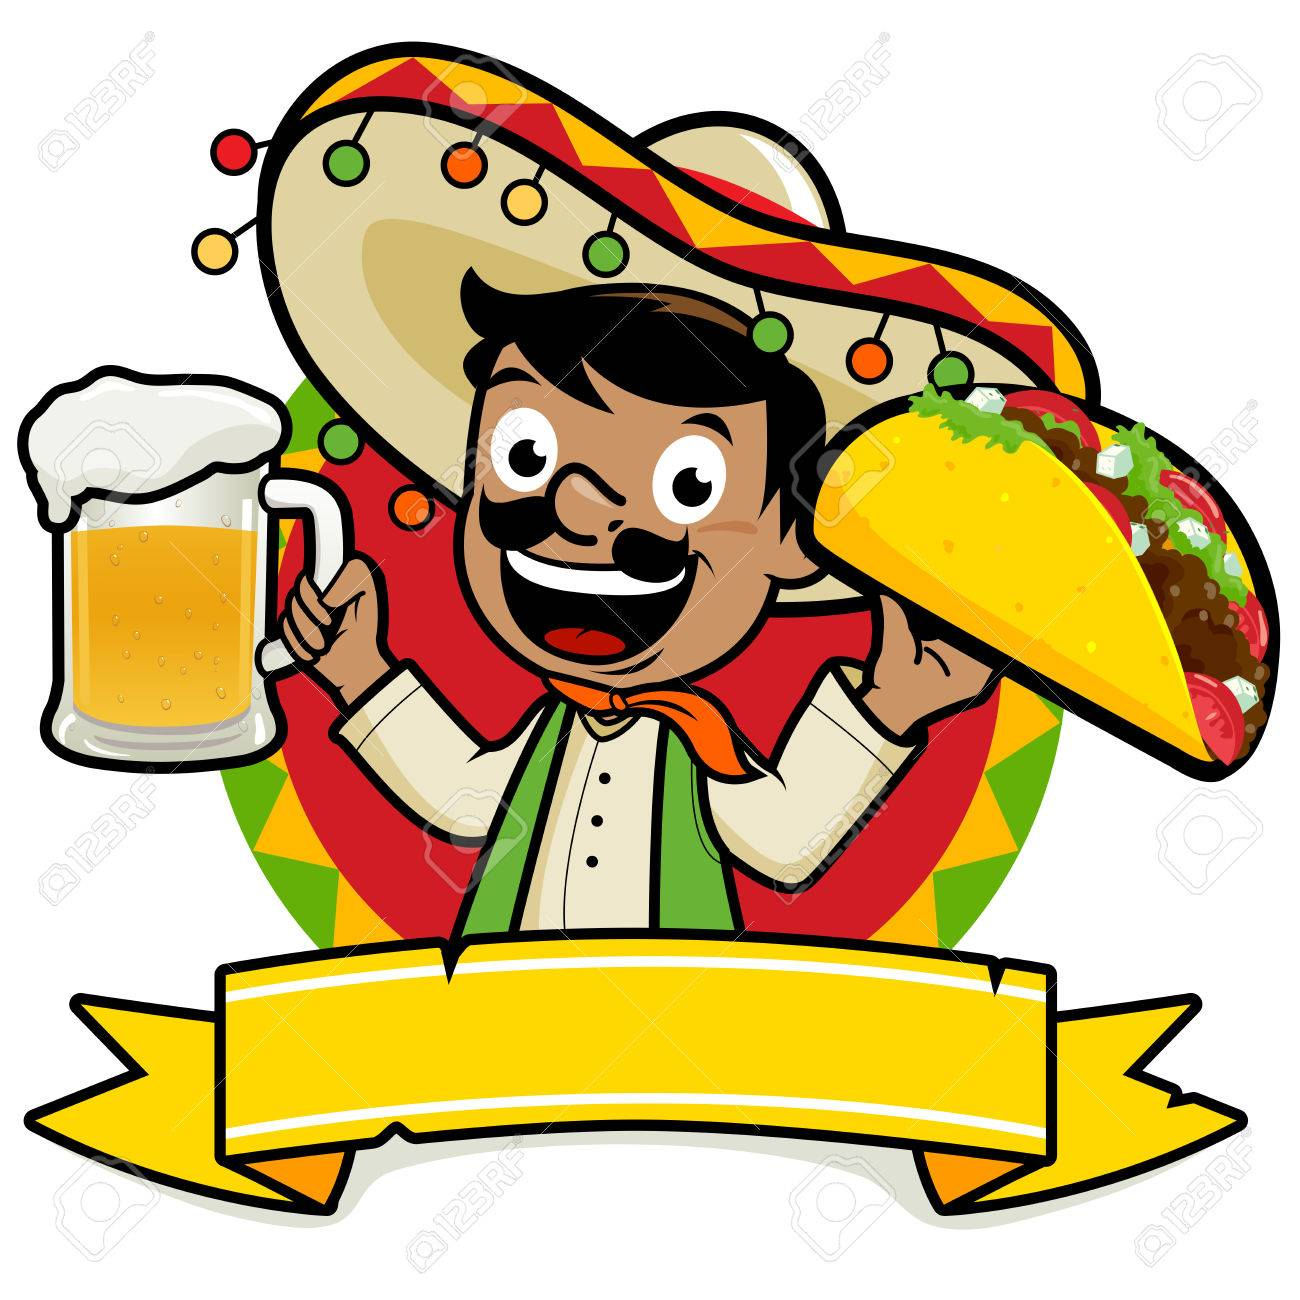 Mexican man holding a cold beer and a taco - 59038240